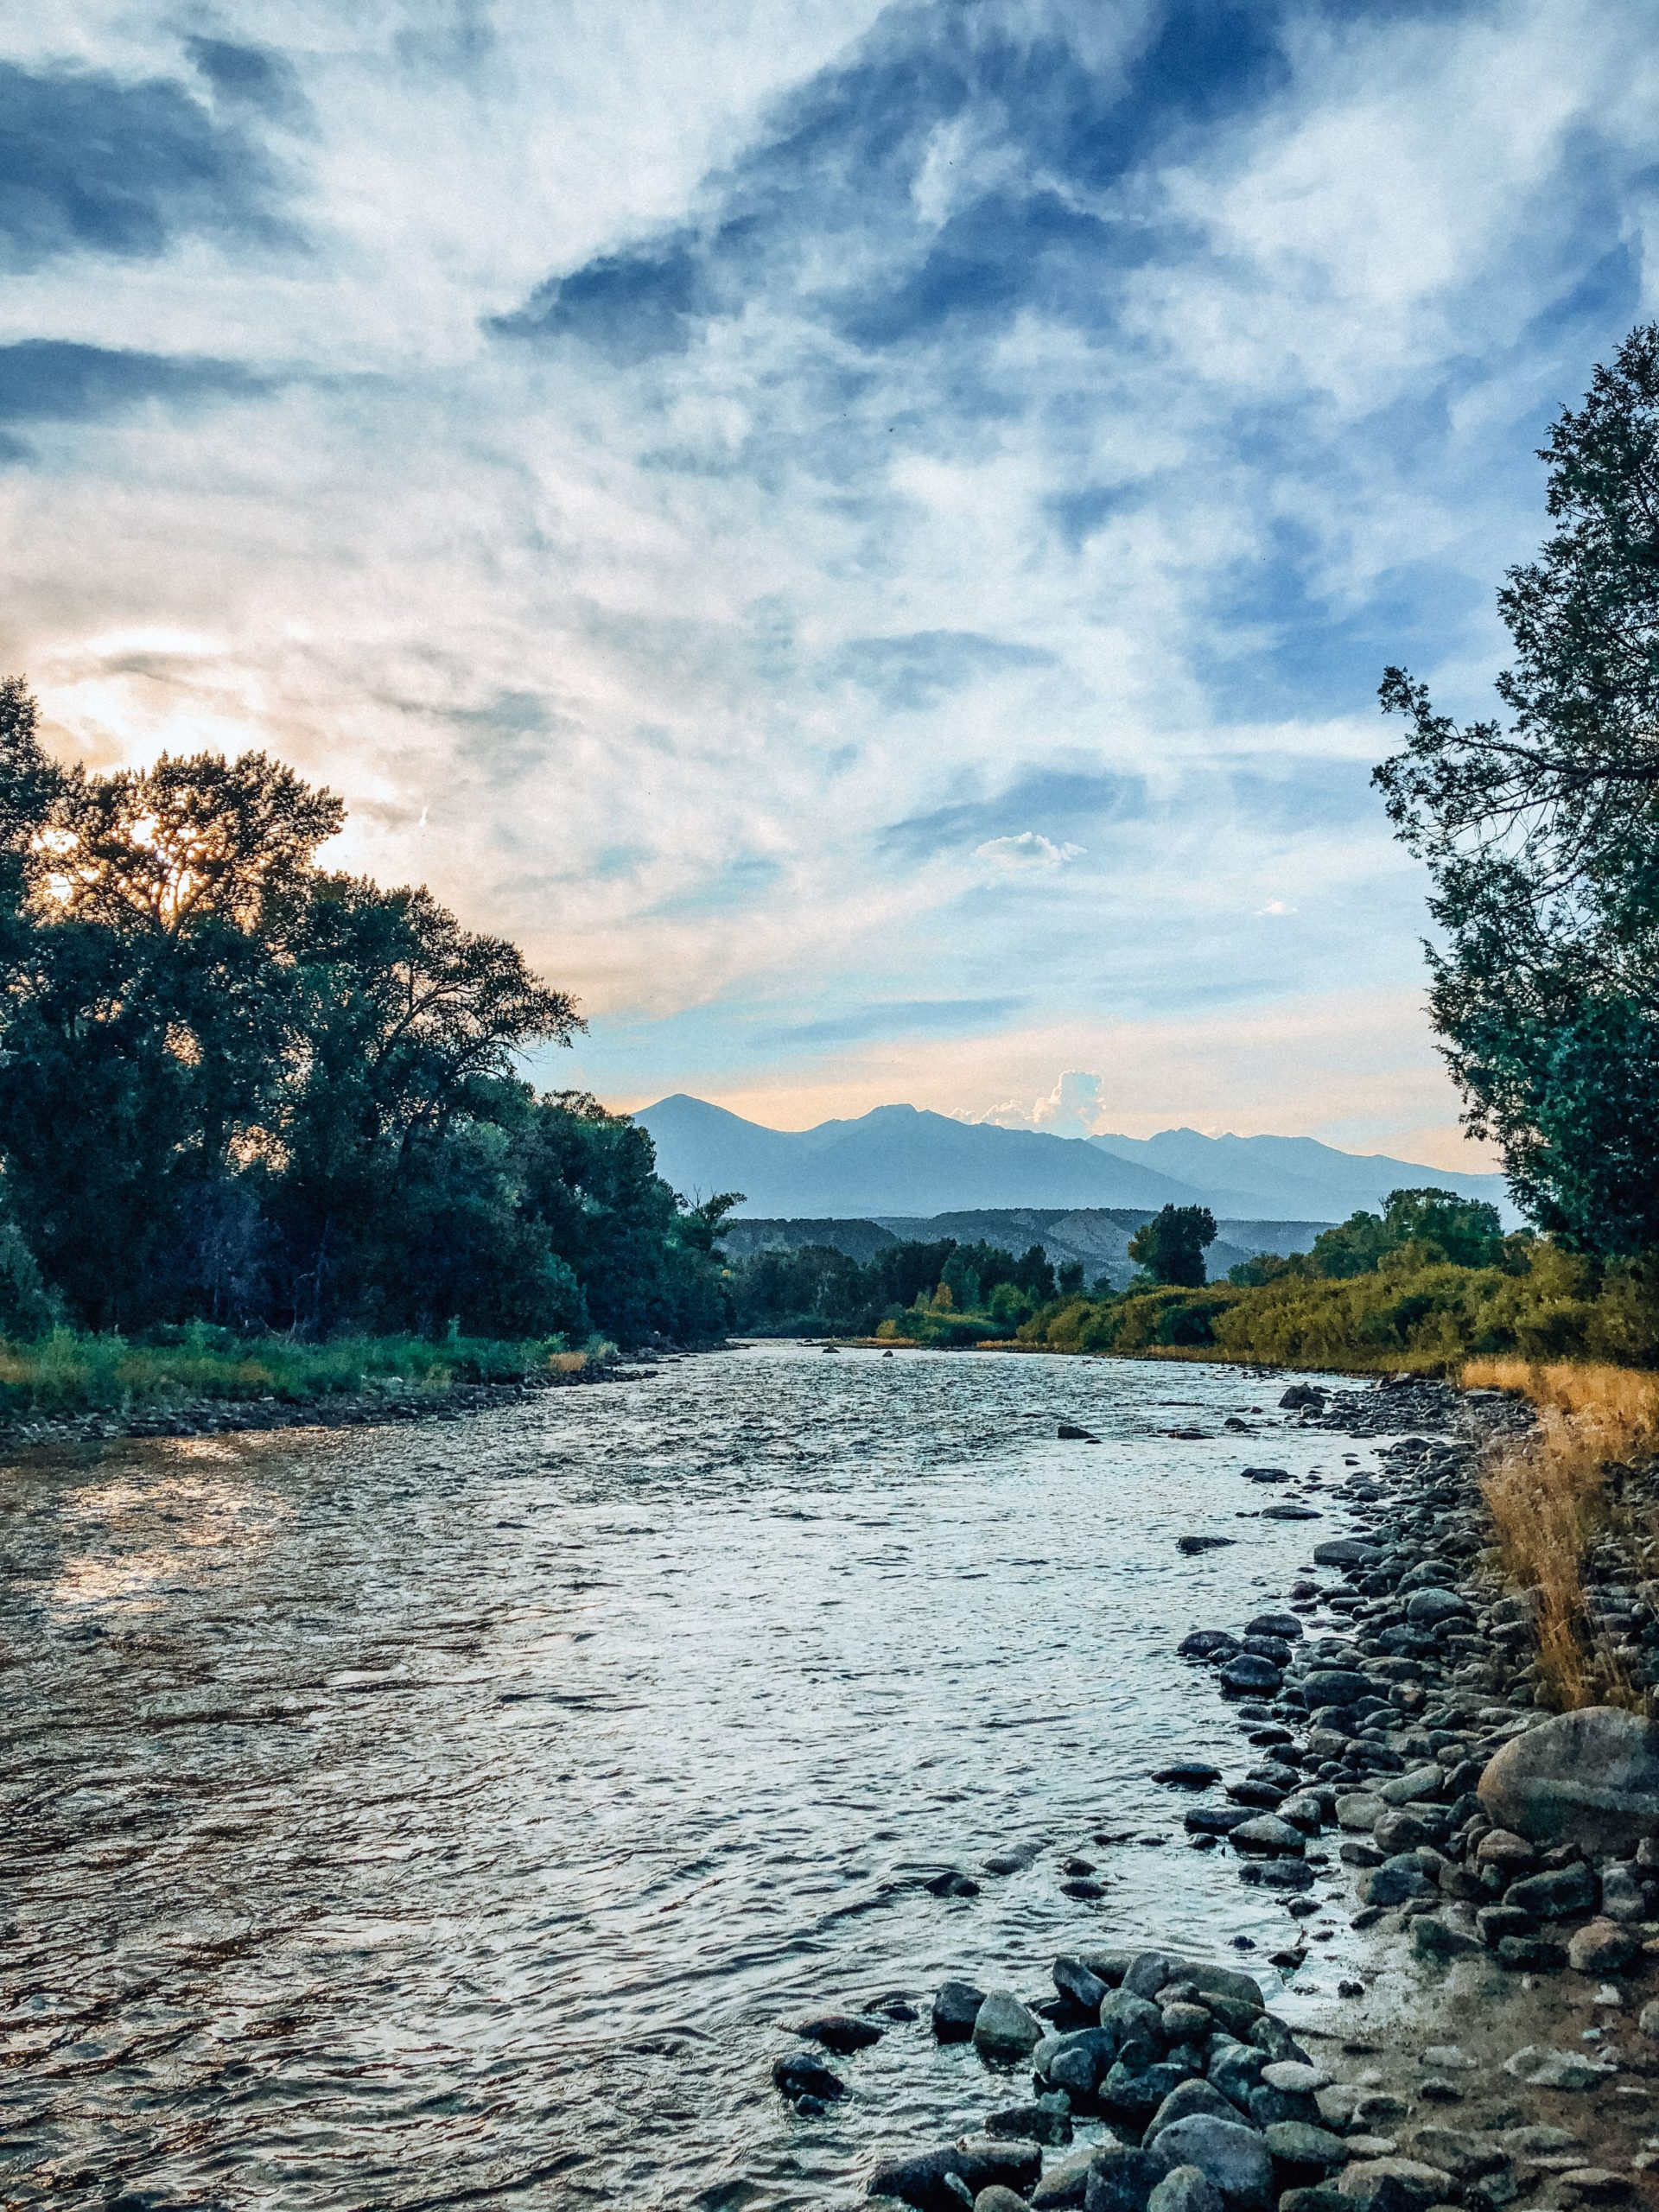 Four Spring Road Trips from Denver